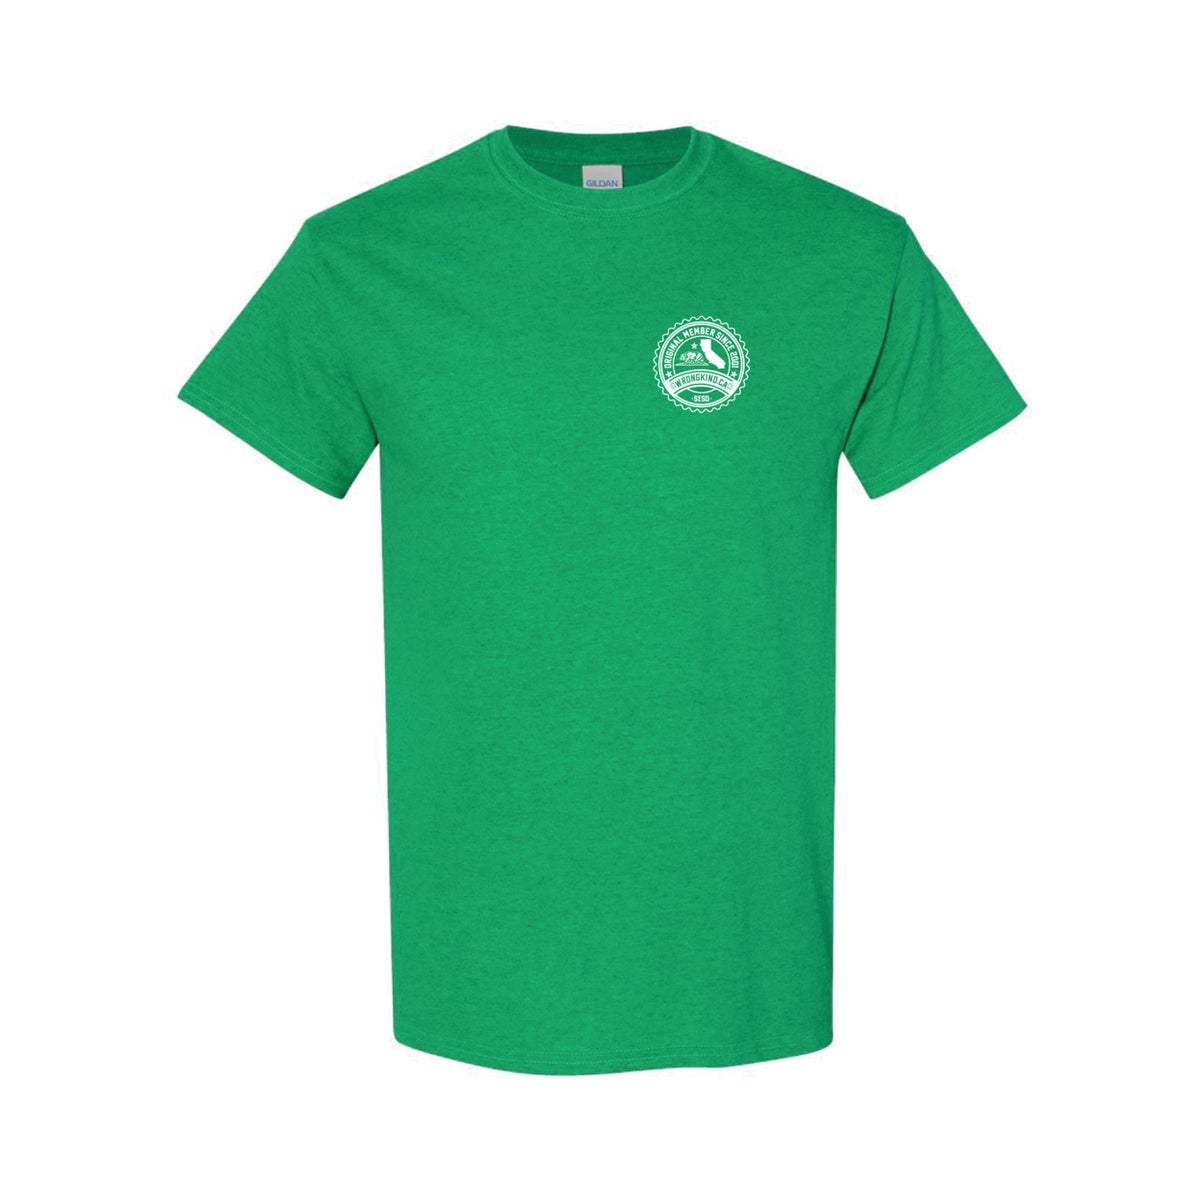 Image of Wrongkind Stamp T-Shirt (Green w/ White)